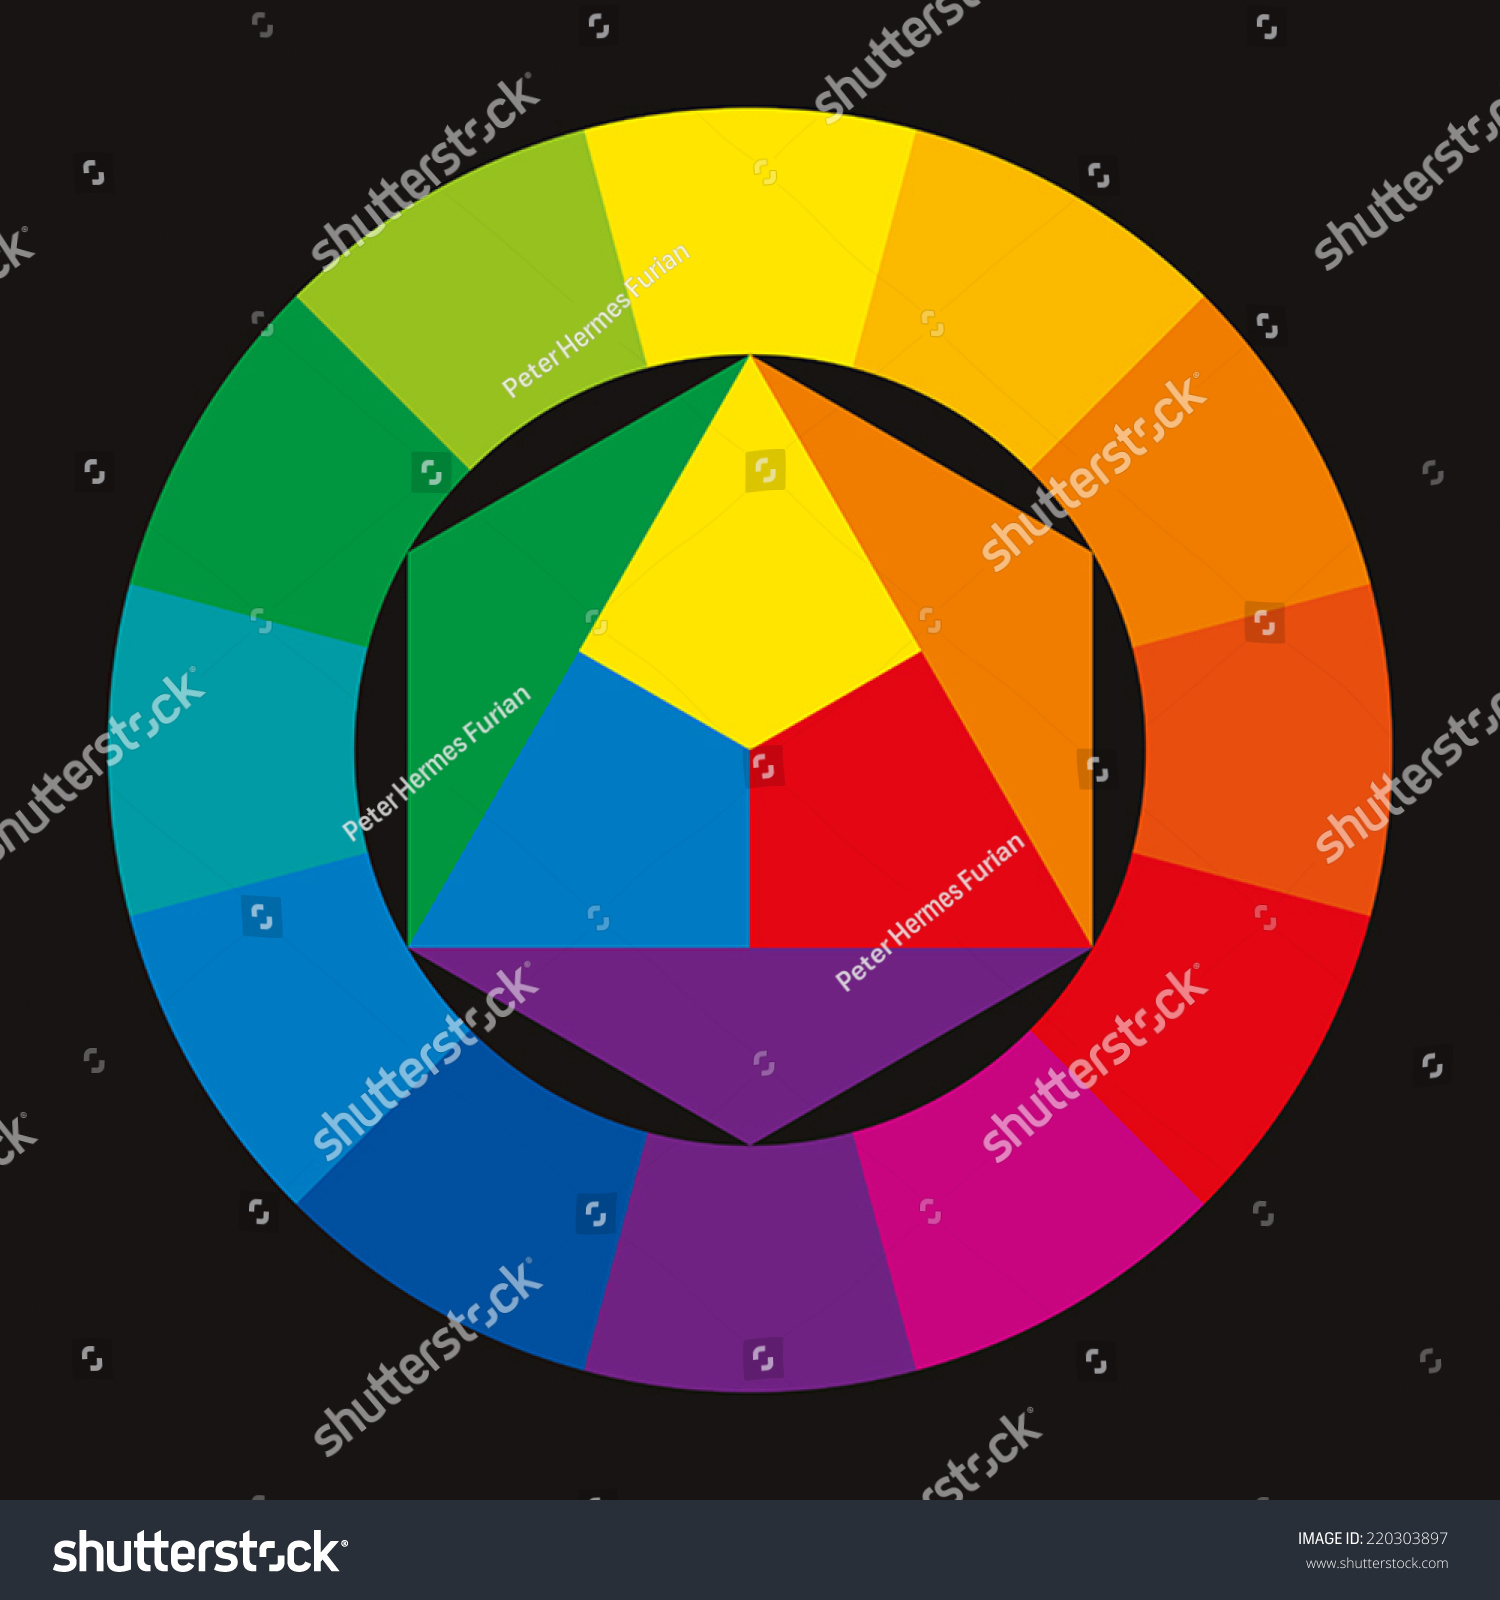 Color wheel complementary colors - Color Wheel On Black Background Color Wheel Showing The Complementary Colors That Is Used